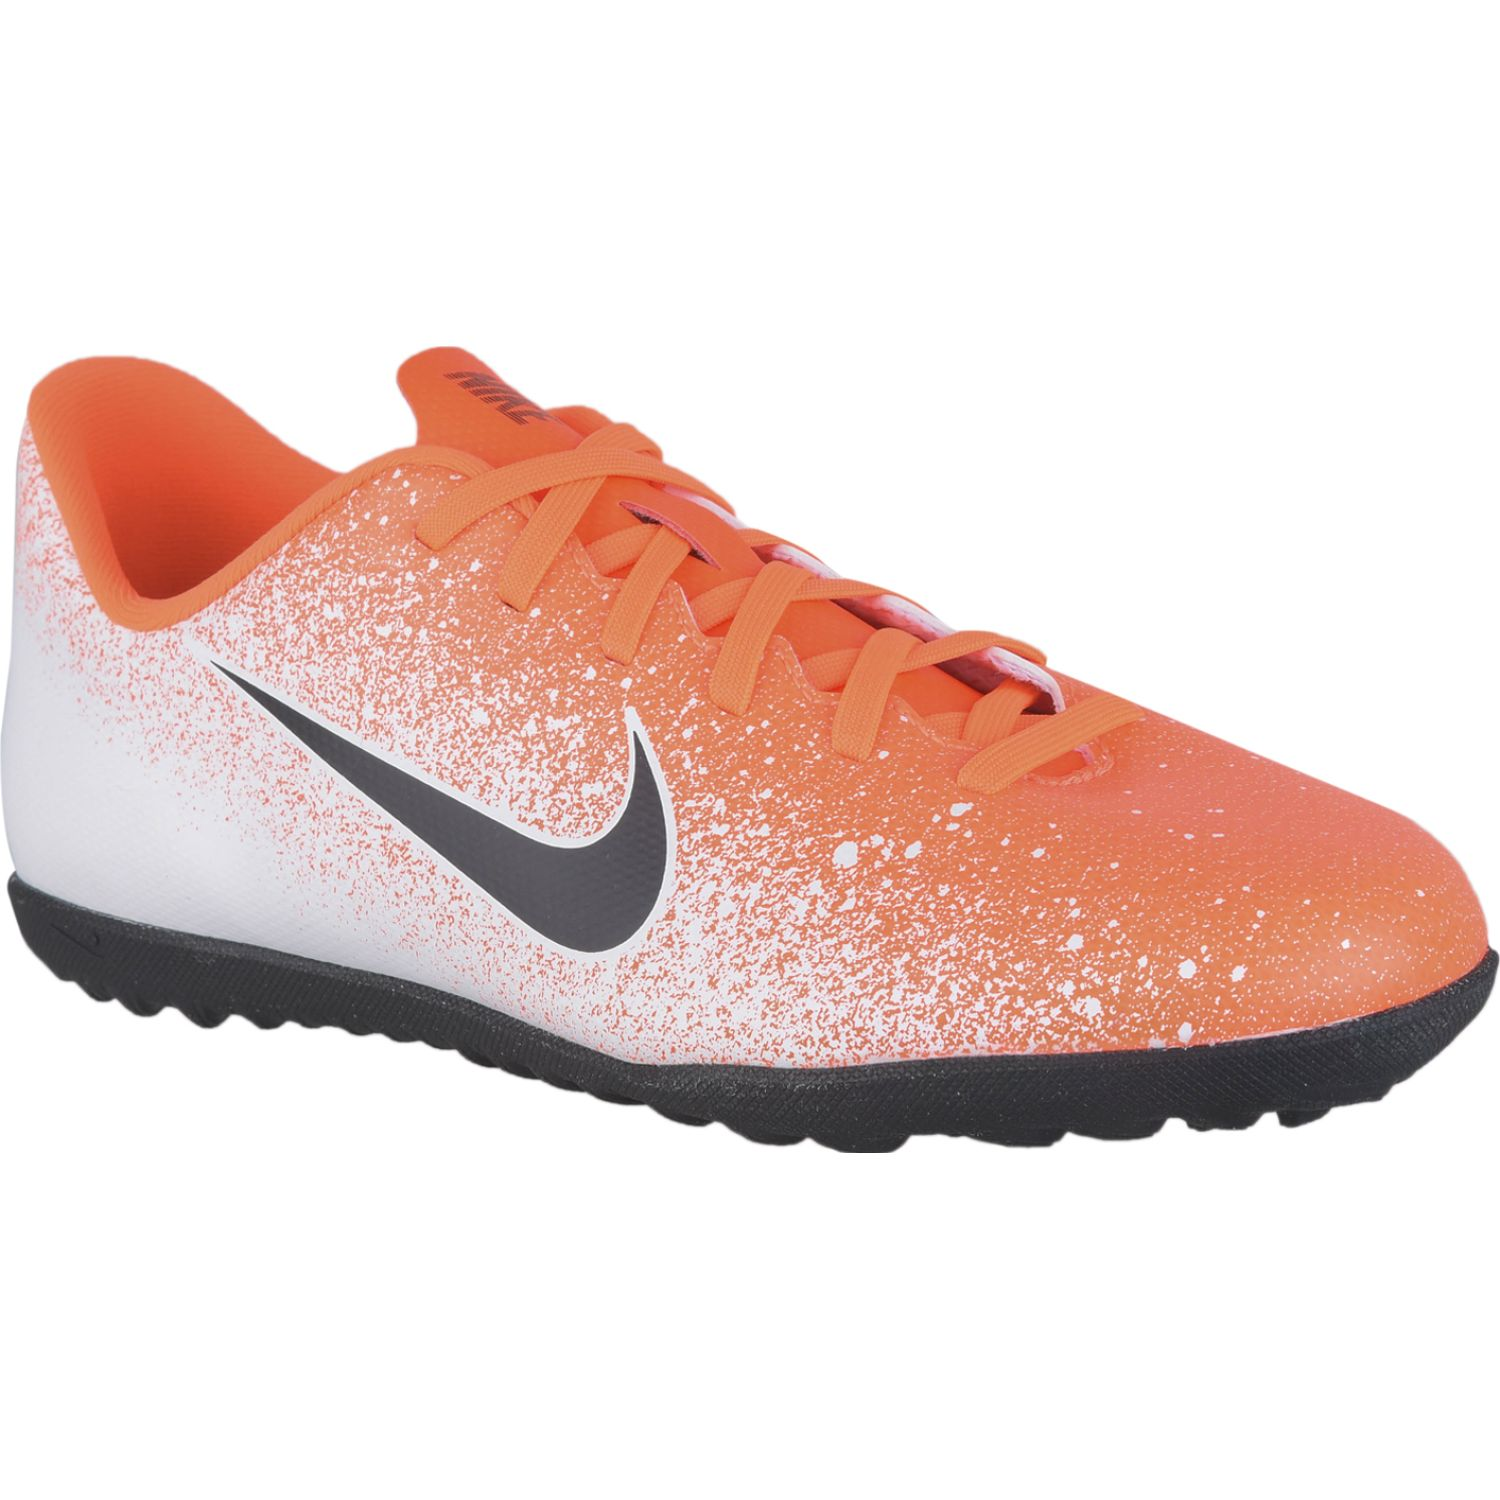 Nike jr vapor 12 club gs tf Blanco naranja Muchachos